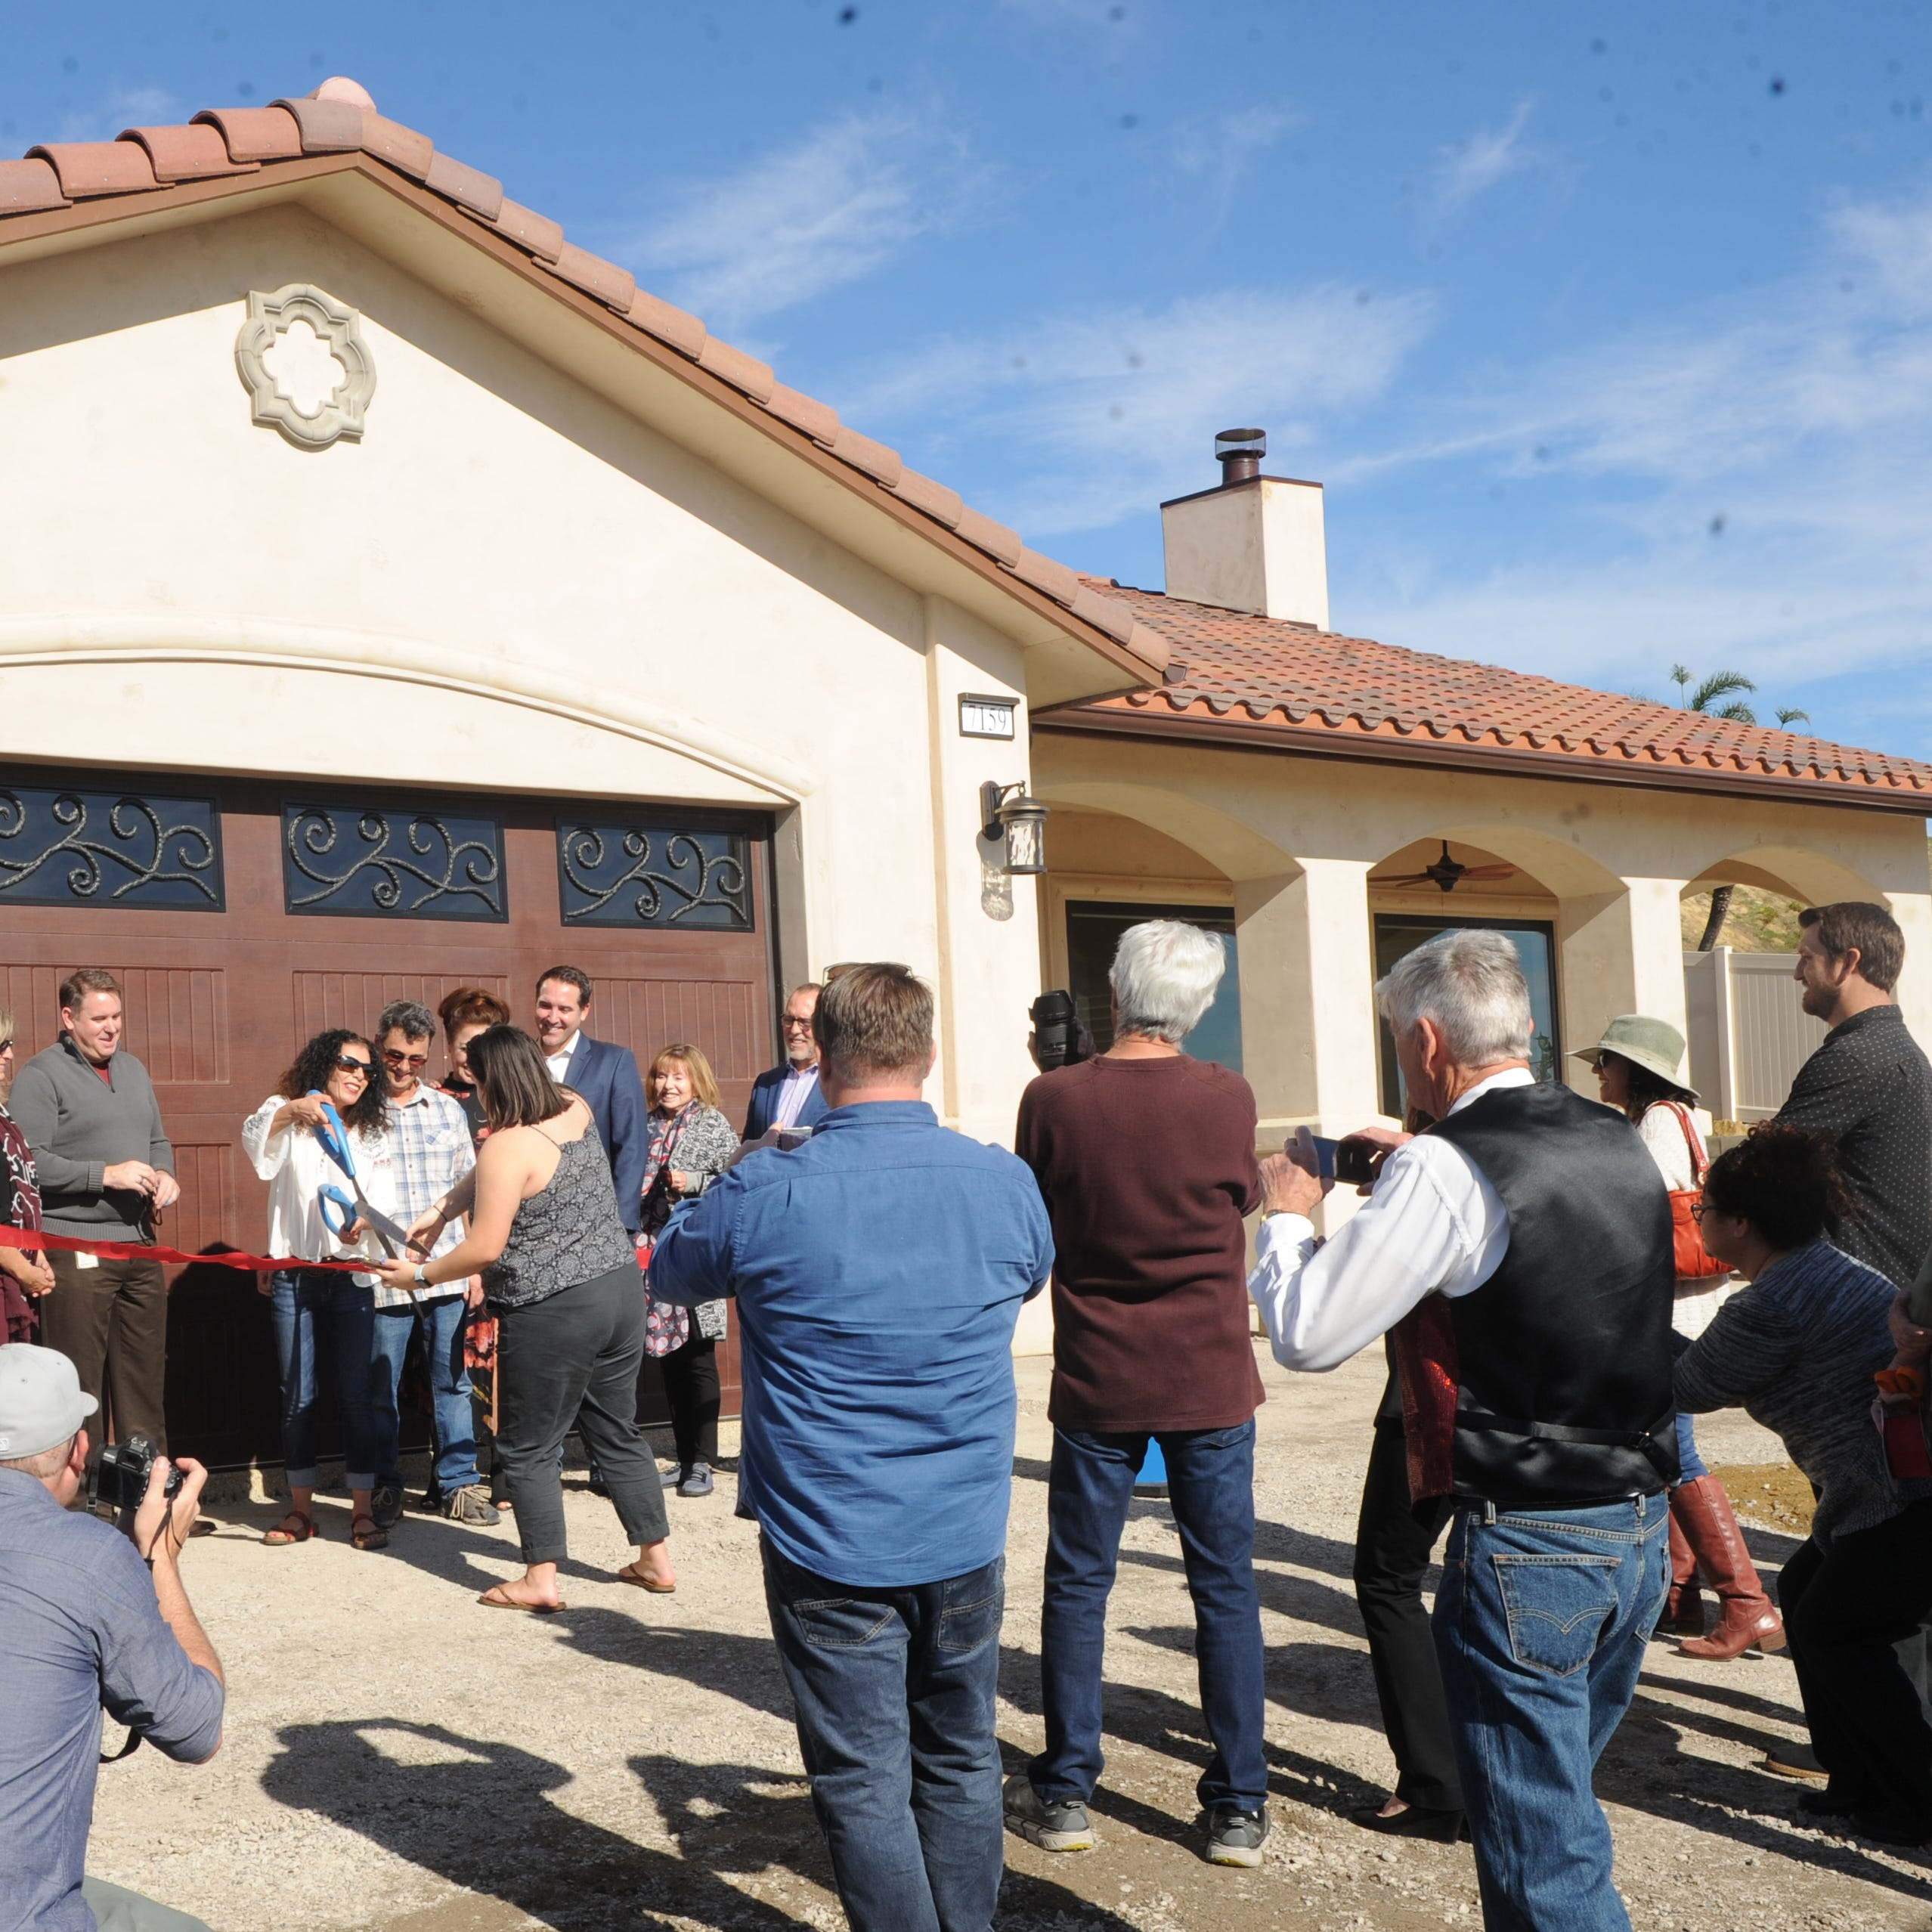 Sandra Gustafson and her husband, Michael Gustafson, who lost their home in the Thomas Fire, celebrate the completion of their new home with a ribbon-cutting ceremony Tuesday morning in Ventura.